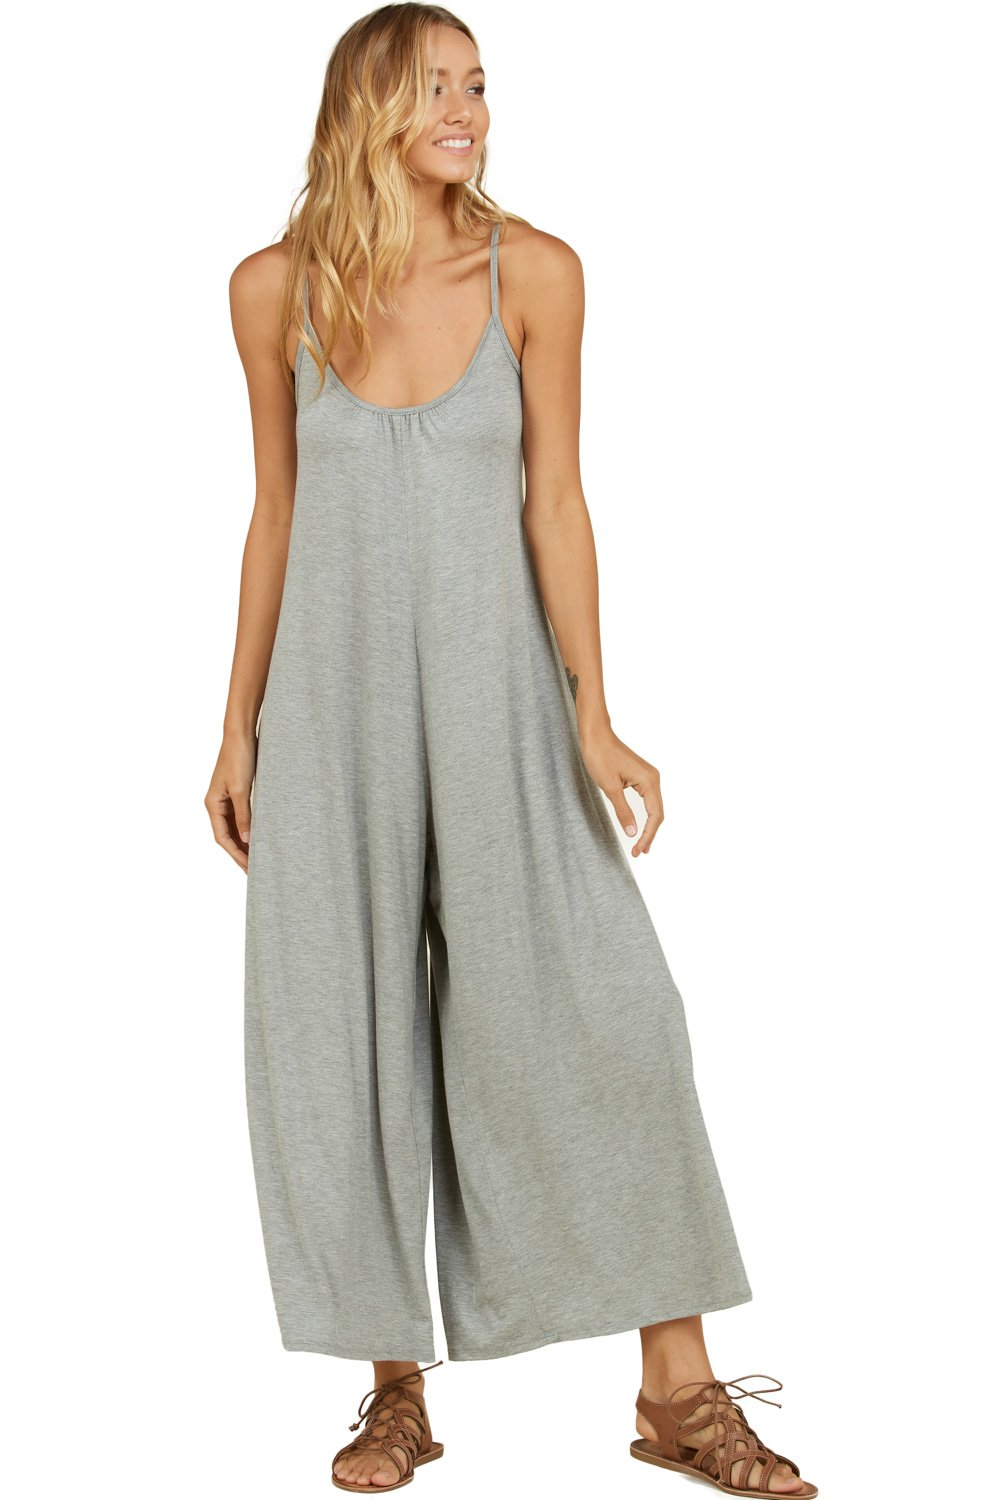 Annabelle Women's Wide Loose Leg Sleeveless Solid Plus Size Jumpsuit H Grey X-Large J8074P